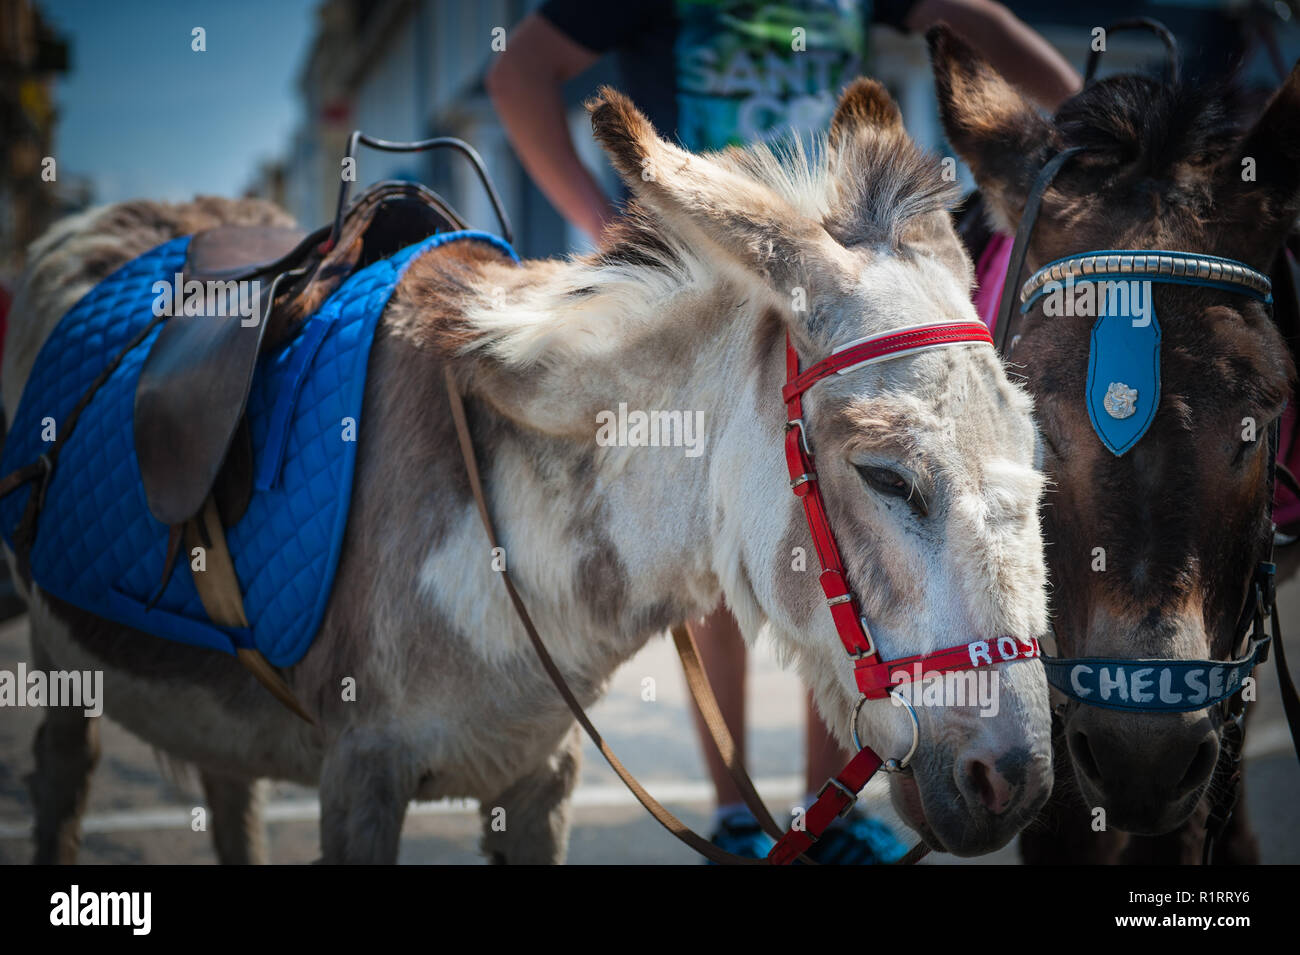 Two donkeys Rosie & Chelsea wait for passangers to give a ride to on the seafront. Stock Photo